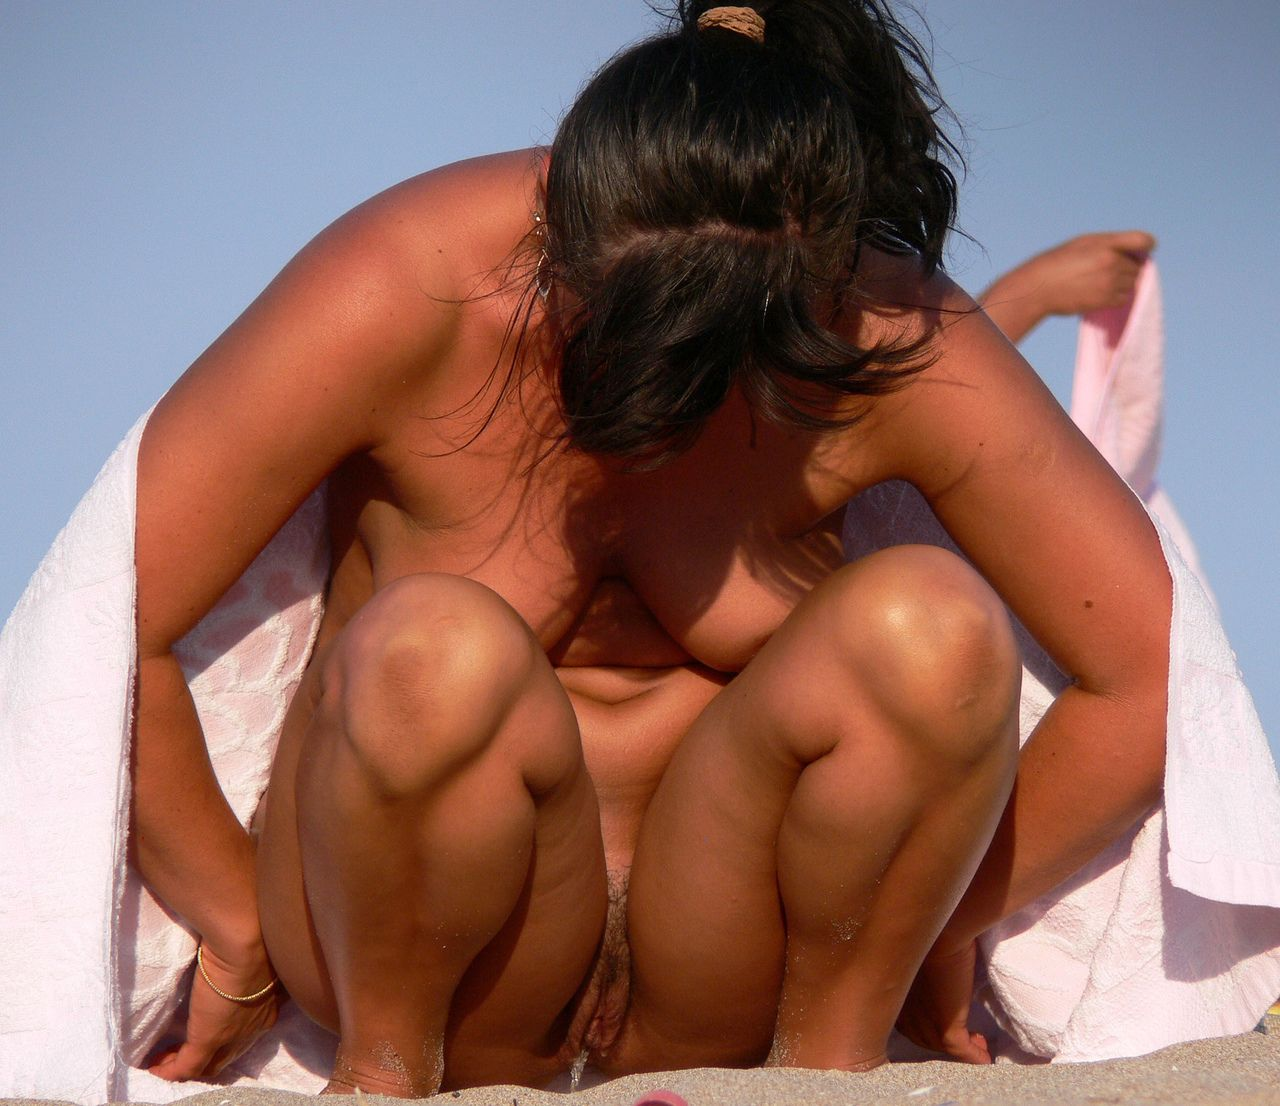 Voyeurisme Plage - 2Folie le sexe en photo et video porno